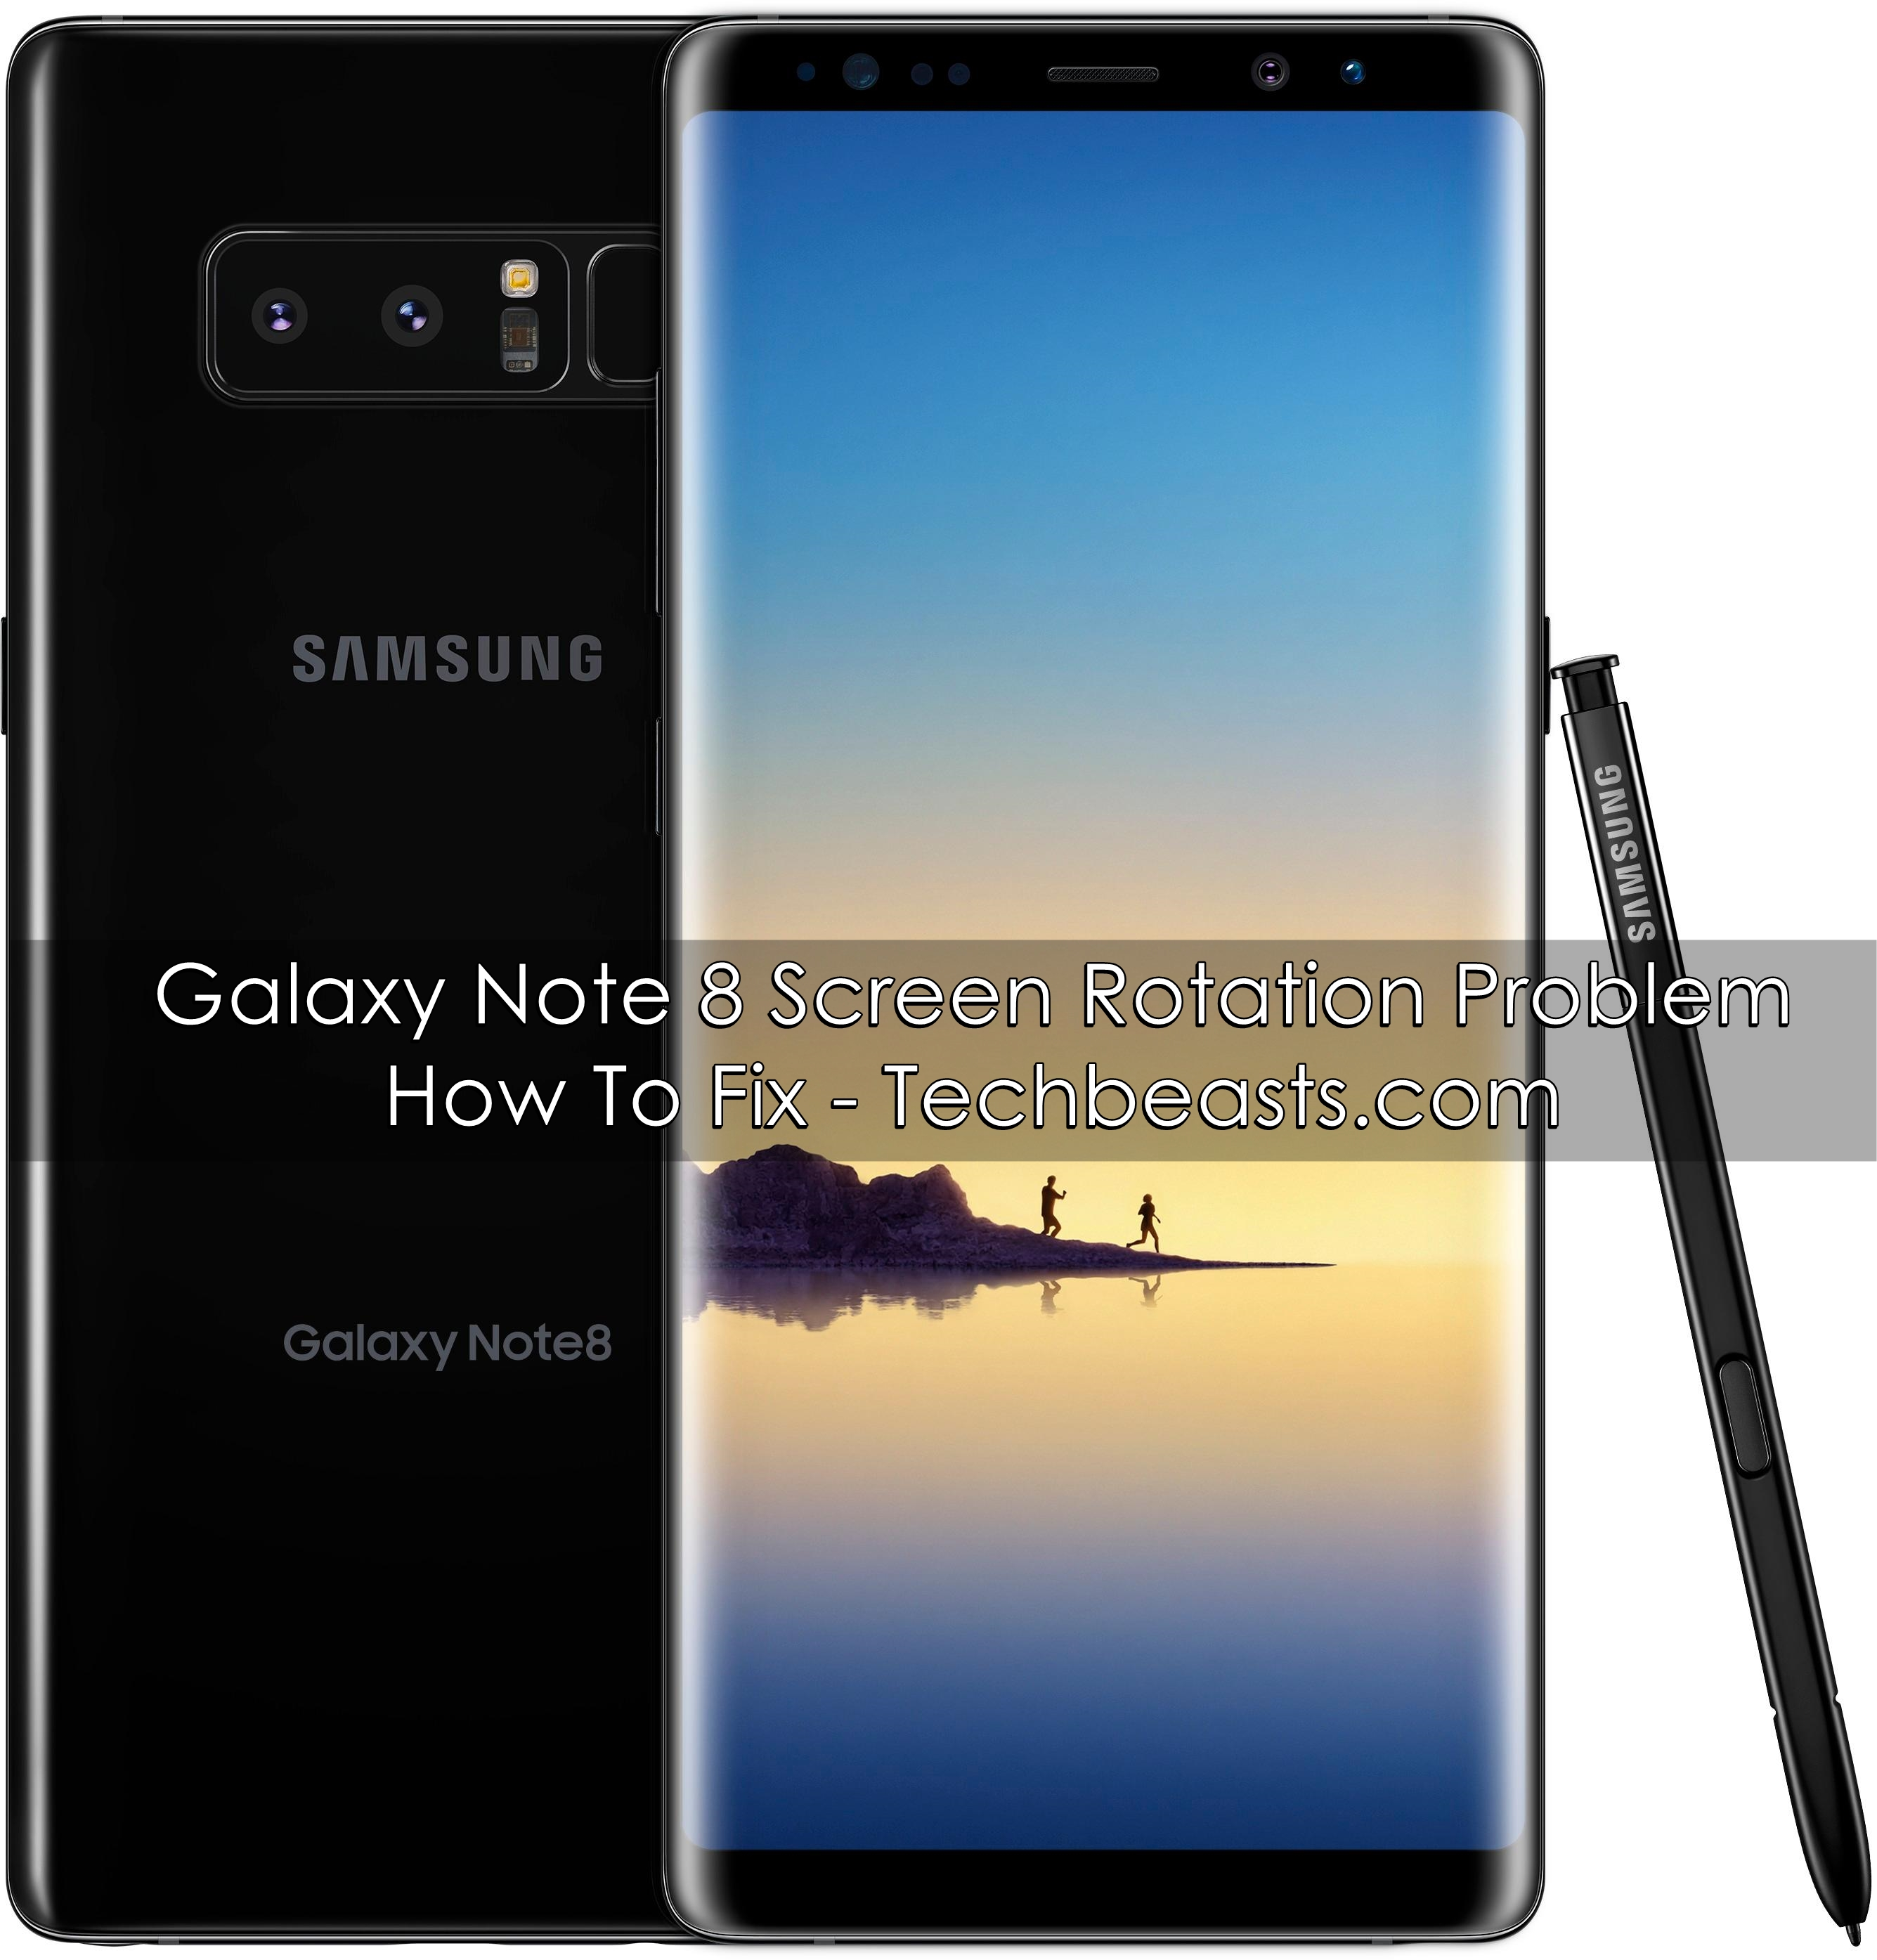 Galaxy Note 8 Screen Rotation Problem